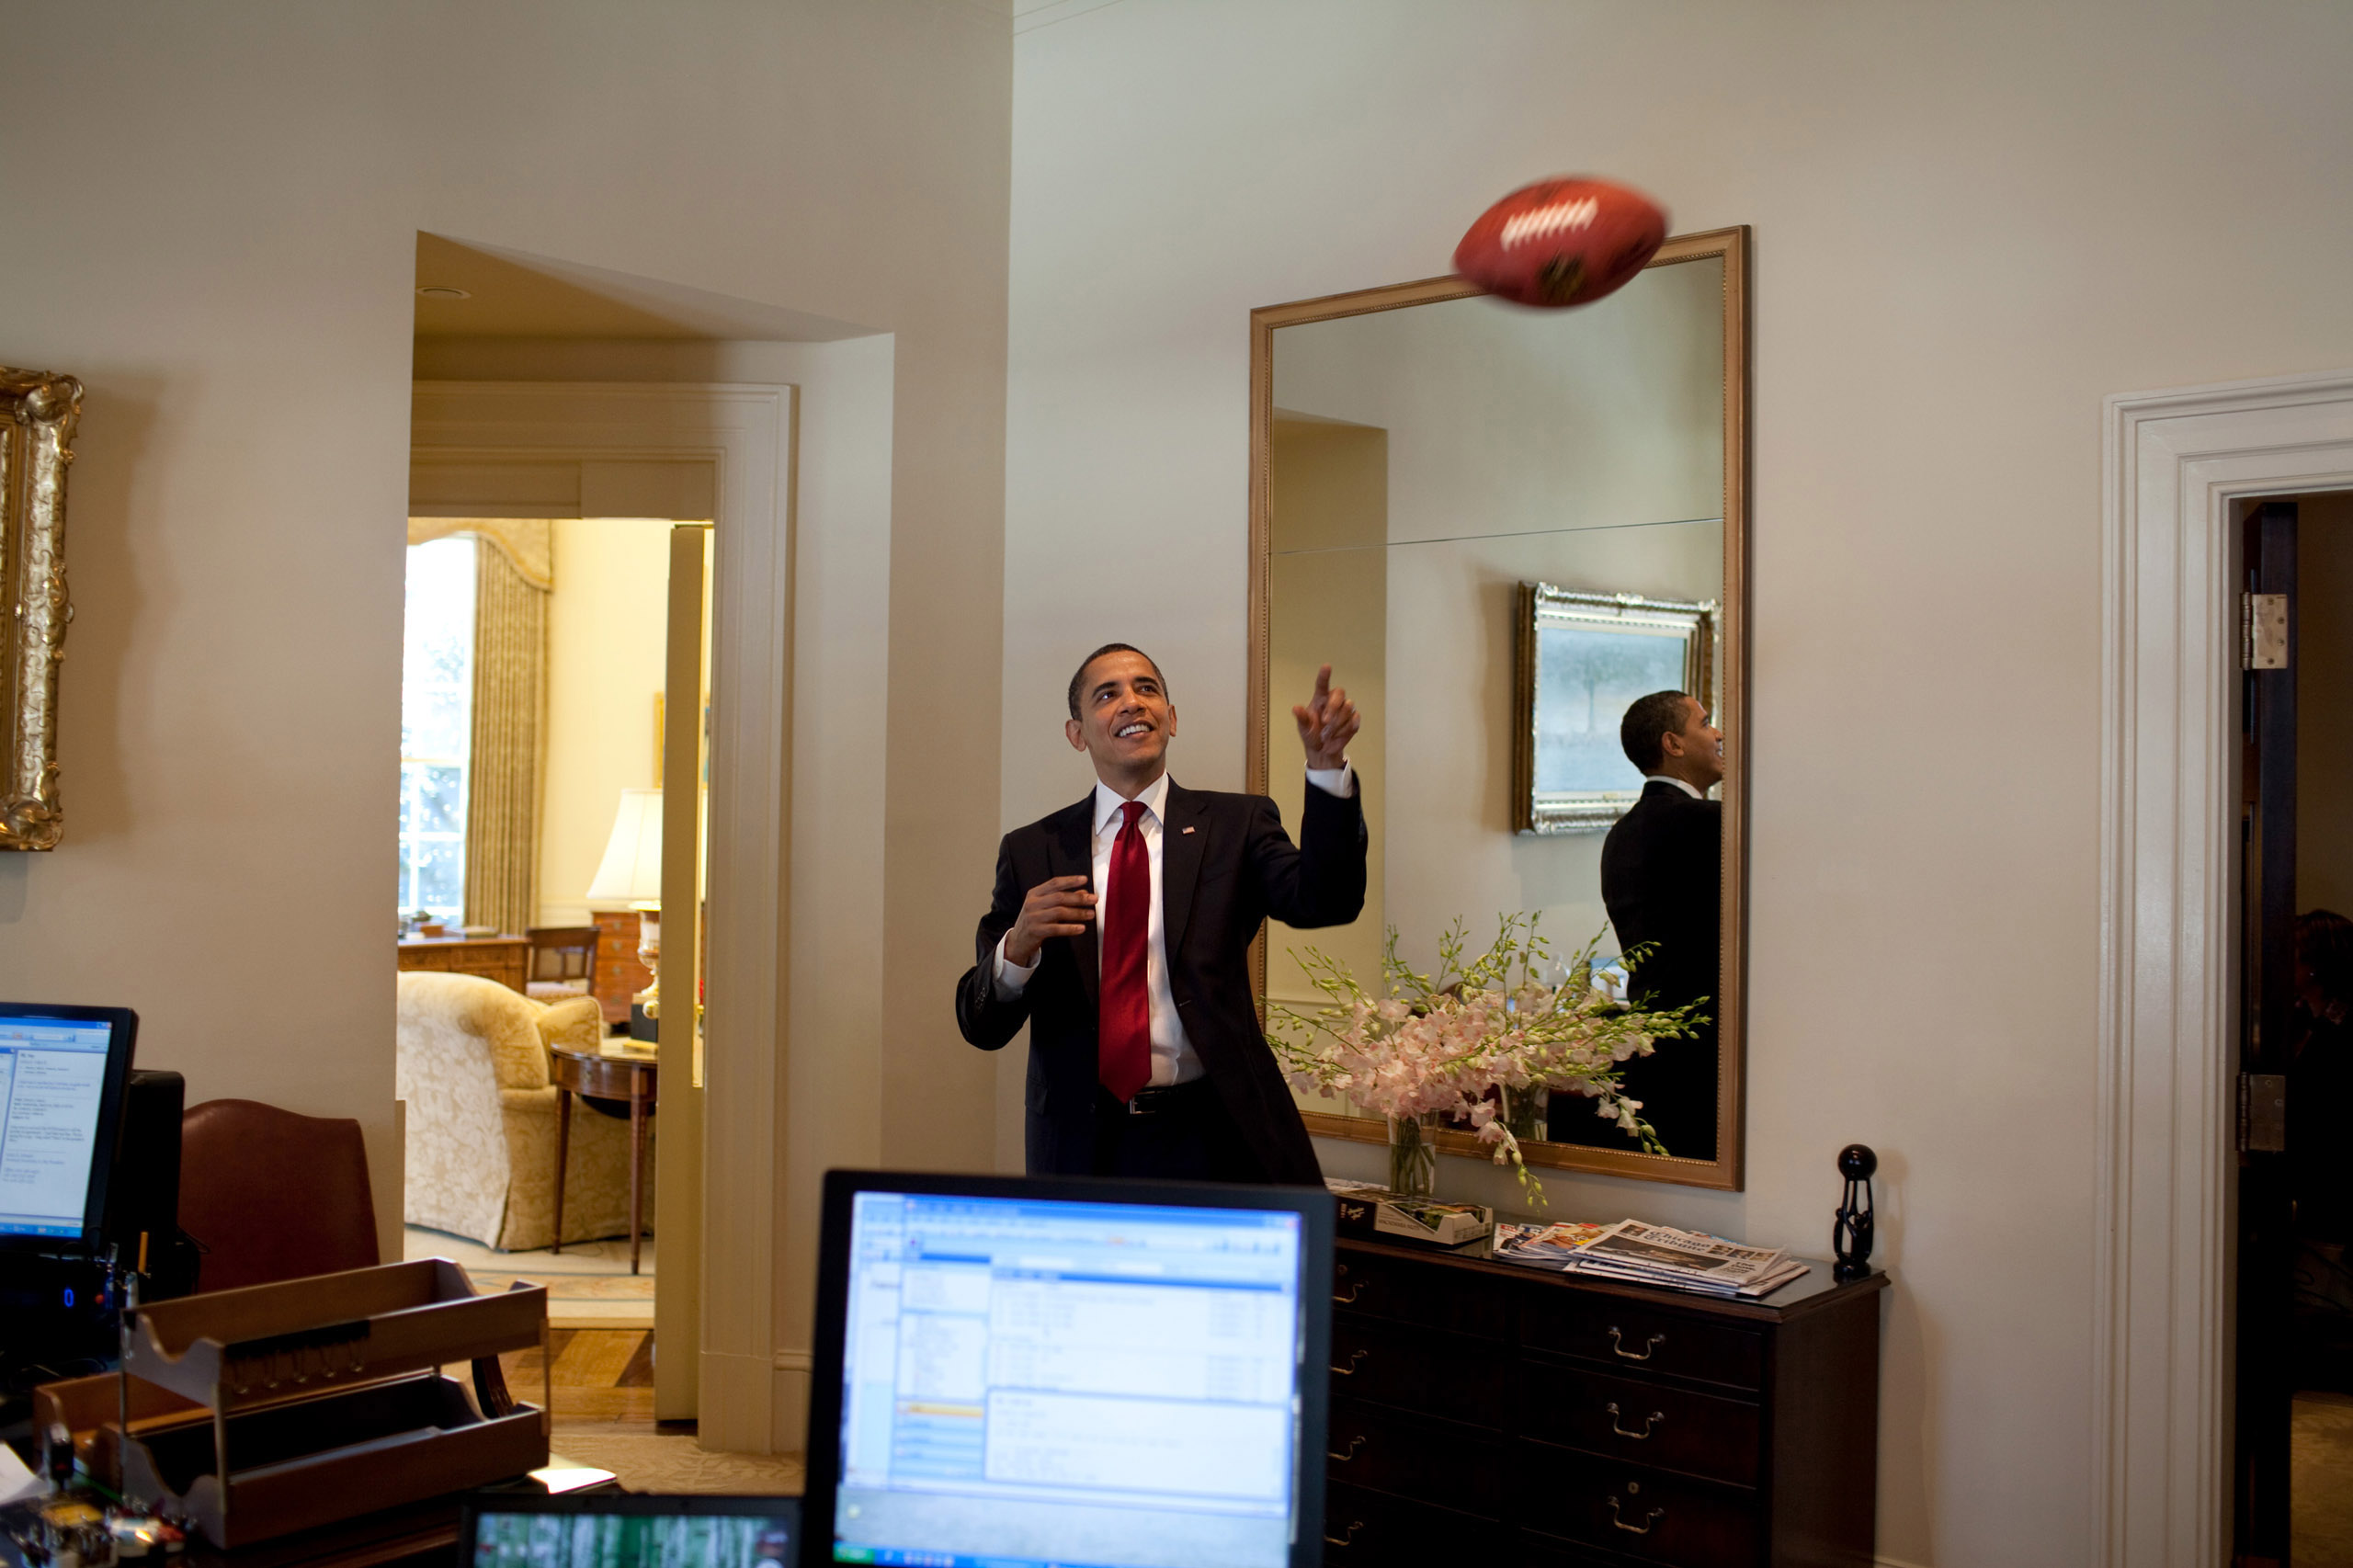 U.S. President Barack Obama plays with a football in the Outer Oval Office of the White House on March 4, 2009 in Washington, DC.